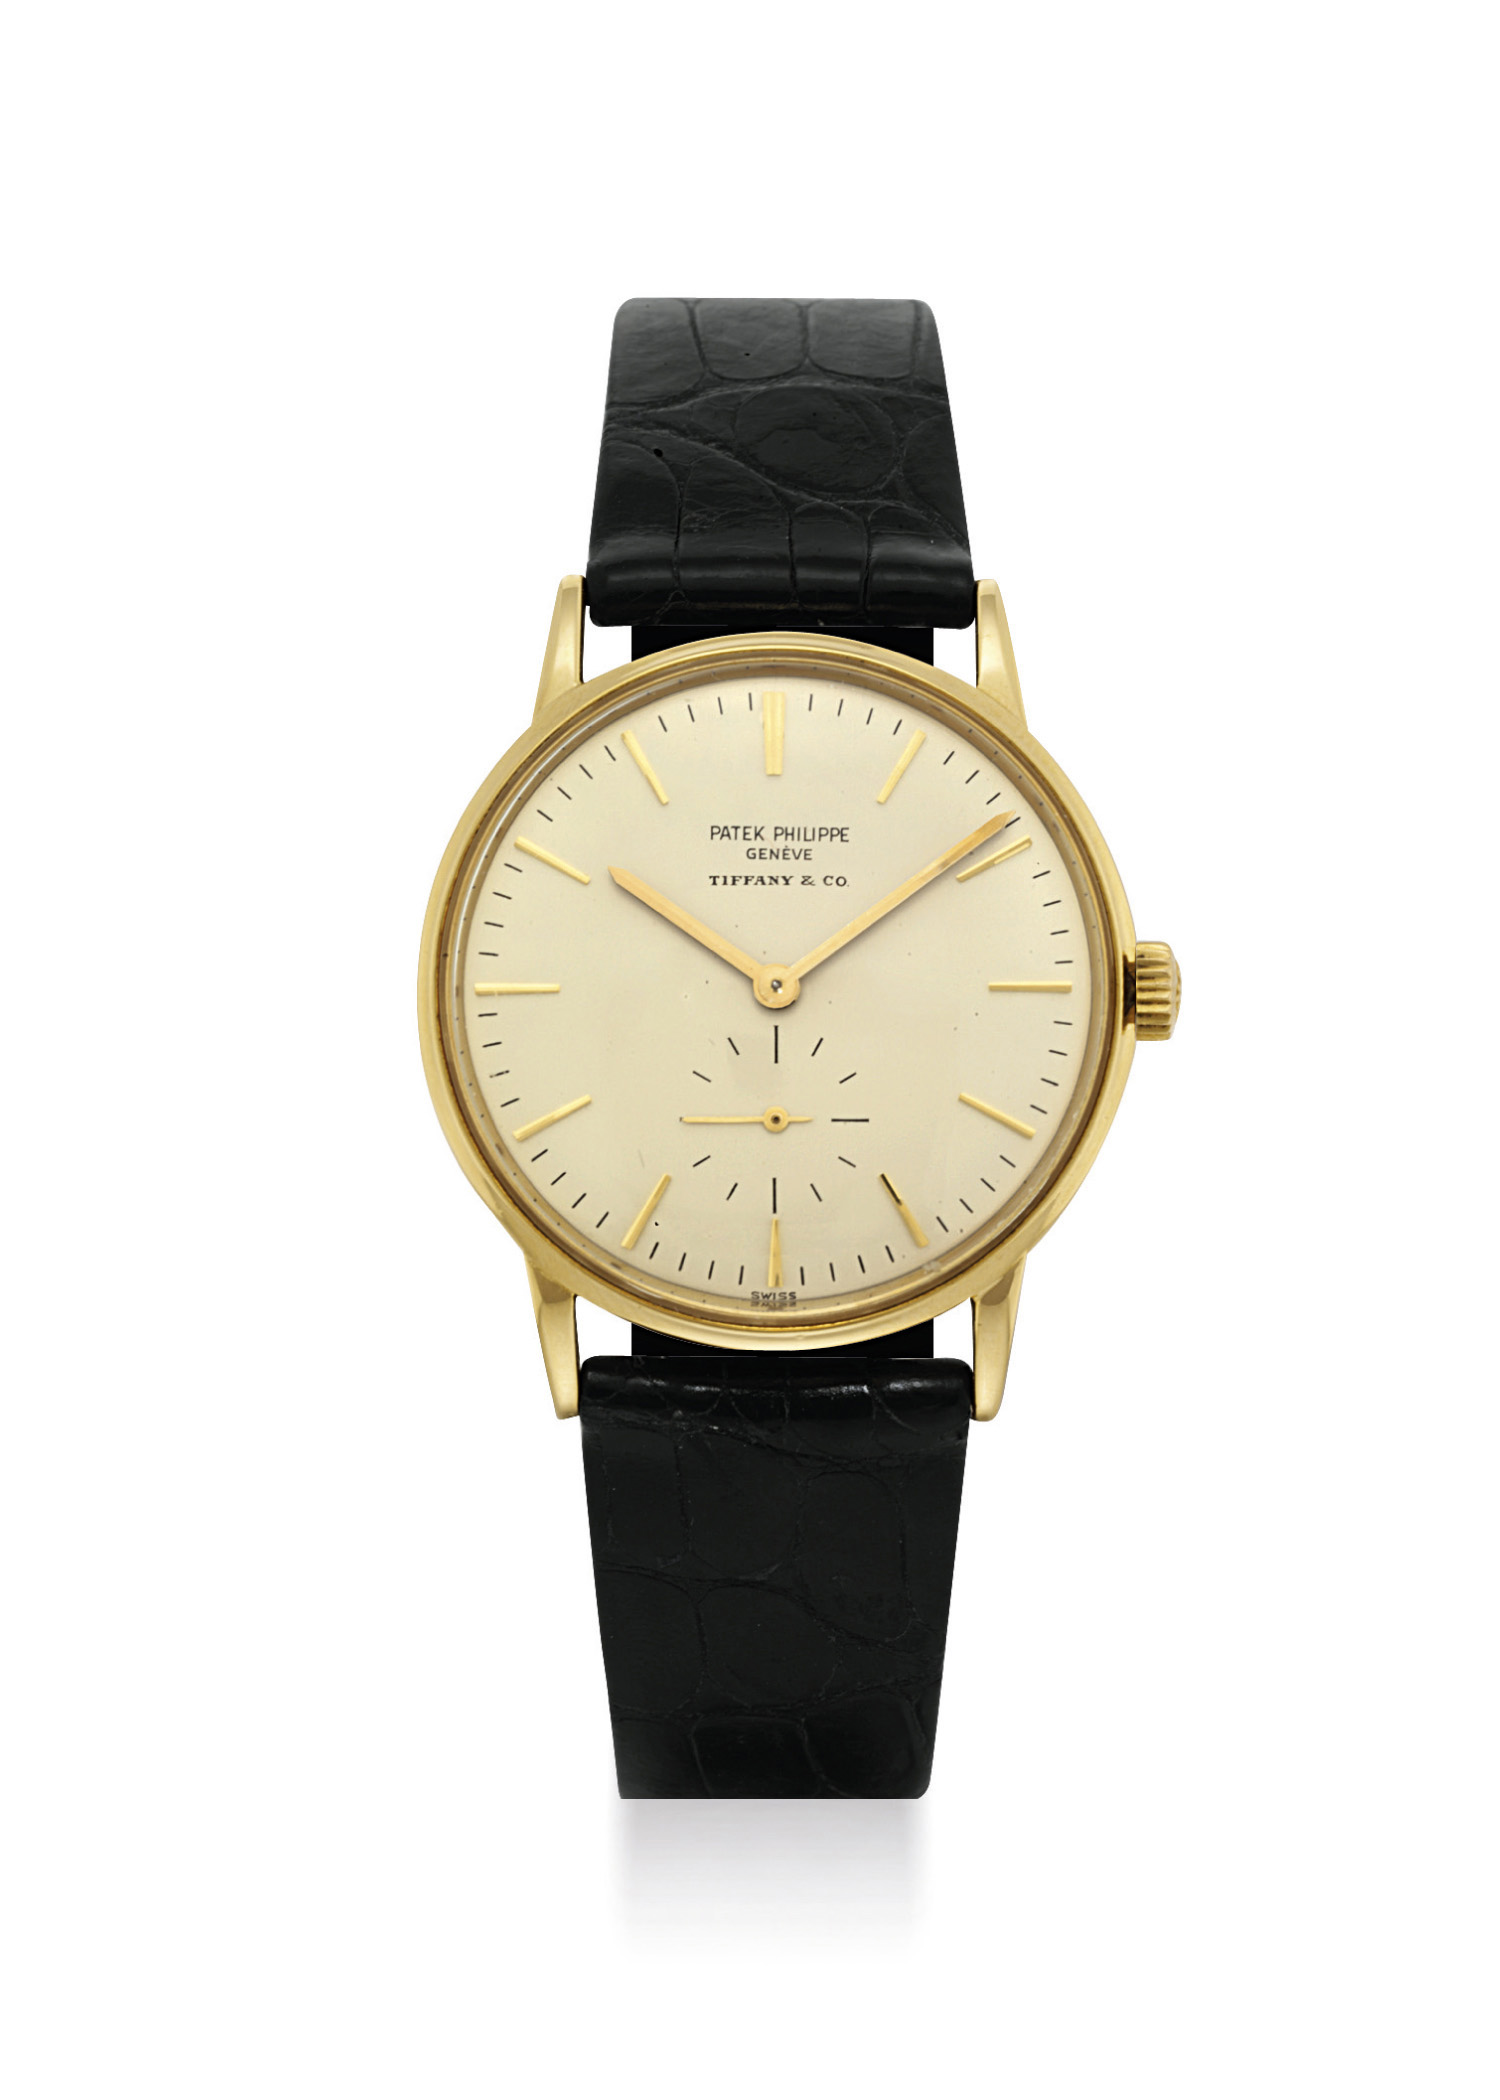 Patek philippe an 18k gold automatic wristwatch retailed by tiffany co signed patek for Patek philippe geneve